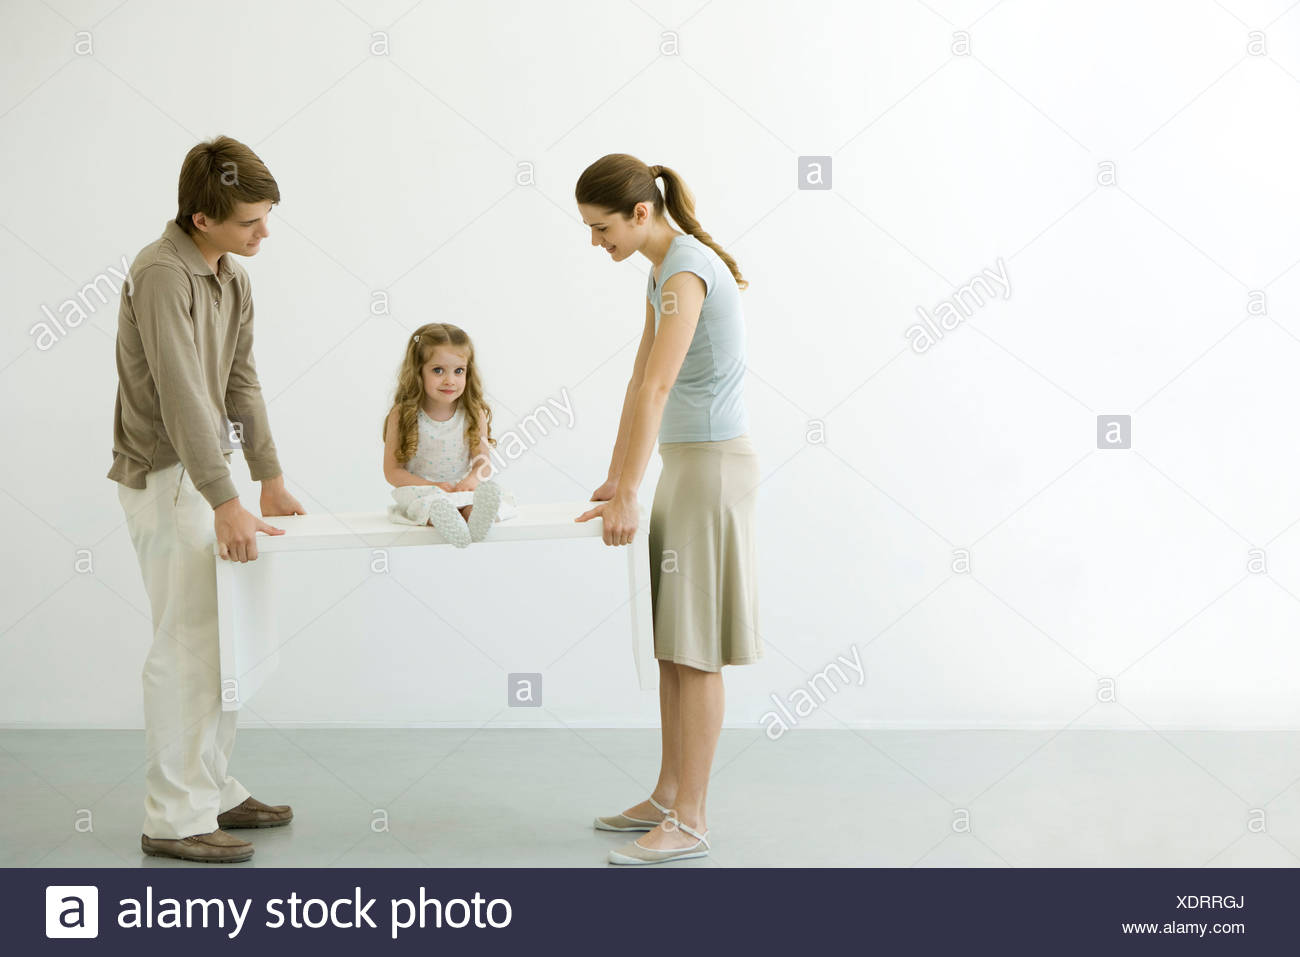 Young couple carrying table with daughter sitting on it - Stock Image